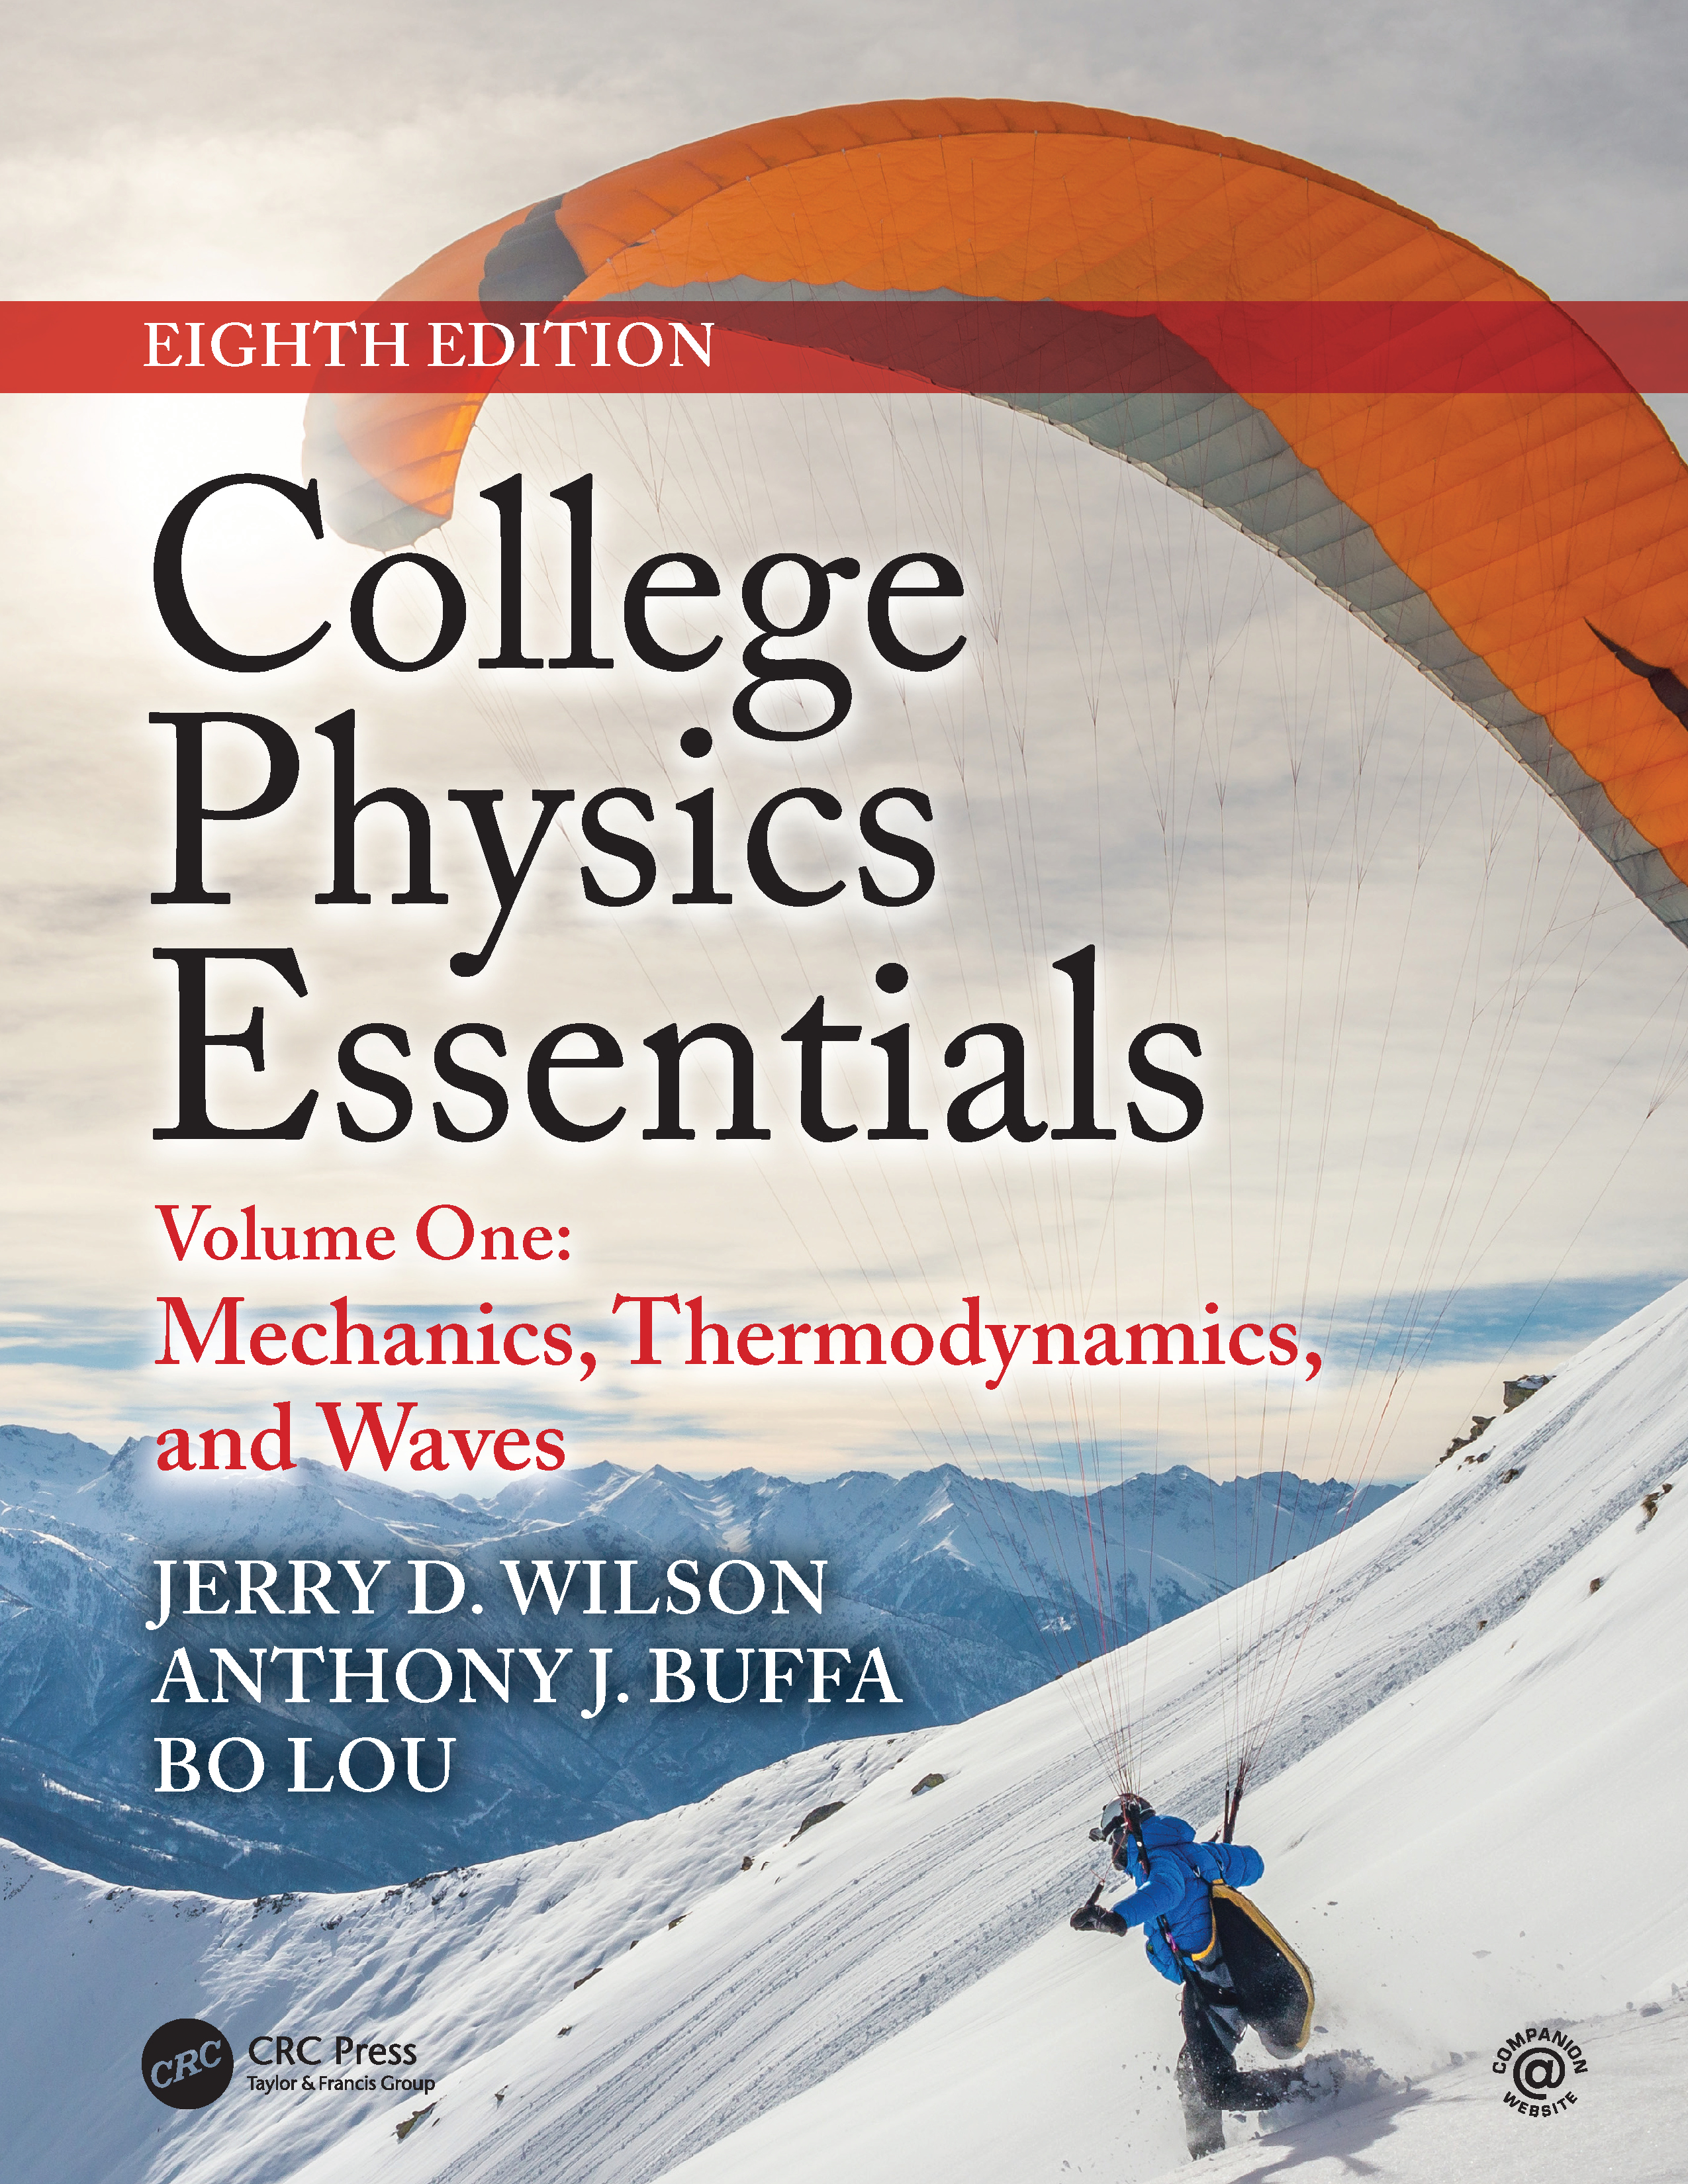 College Physics Essentials, Eighth Edition: Mechanics, Thermodynamics, Waves (Volume One) book cover